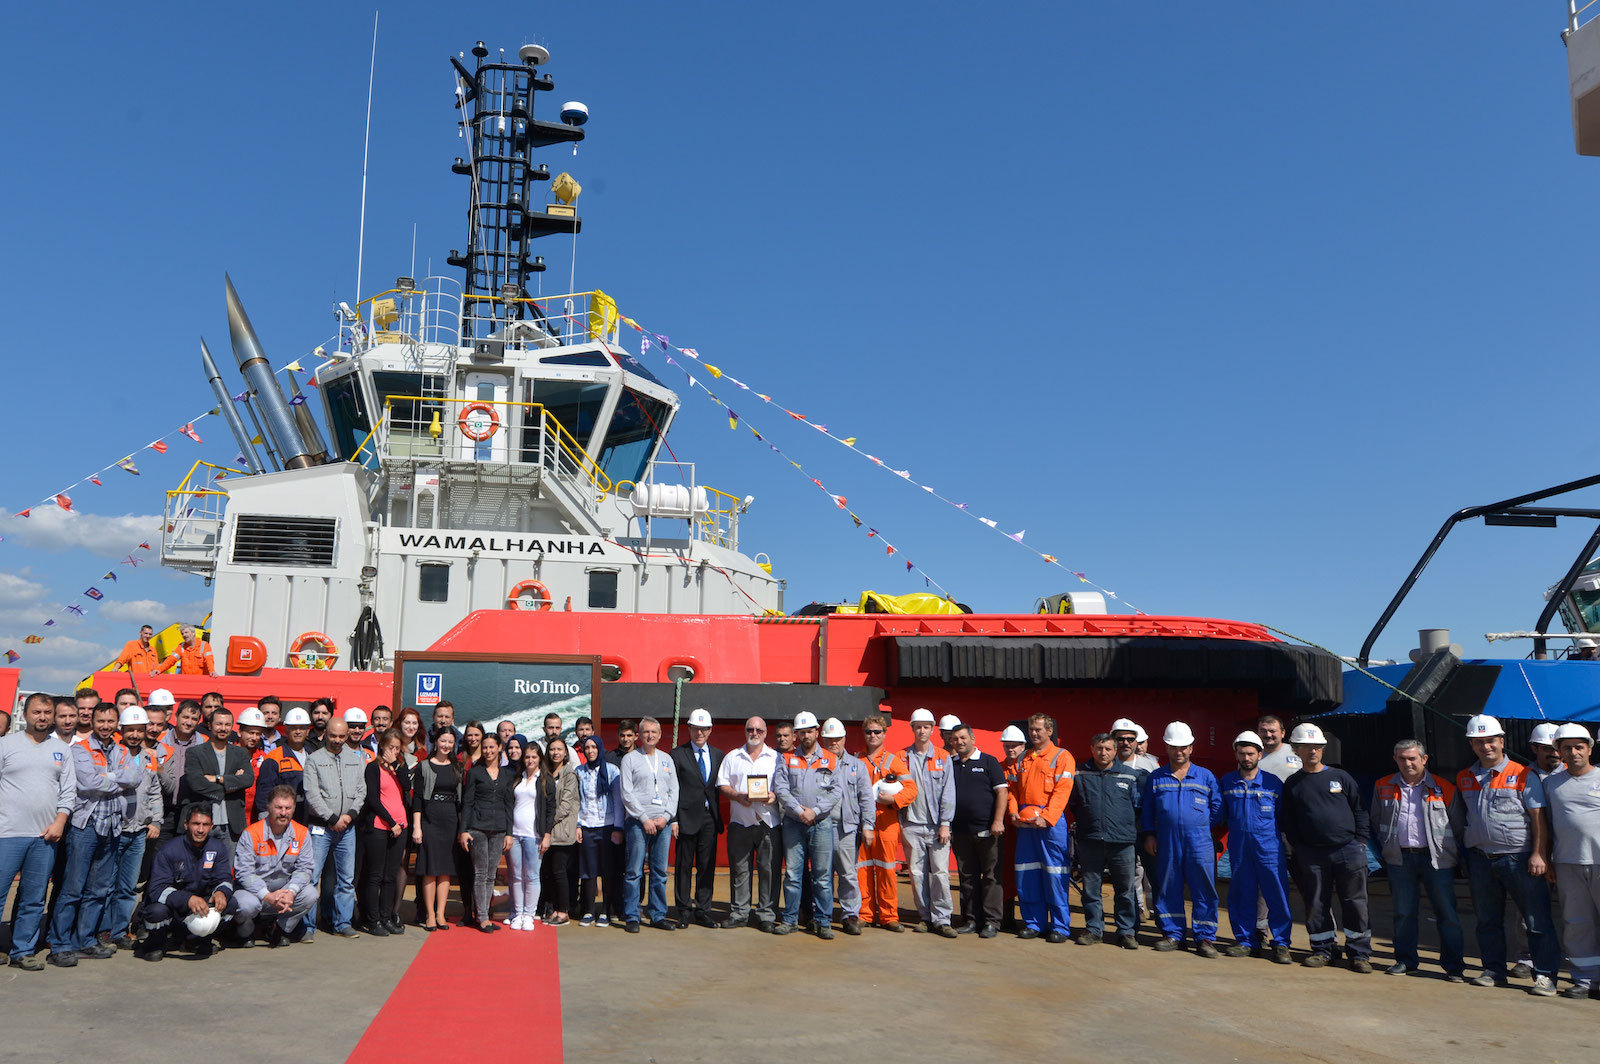 Turkey's UZMAR names RAstar 3200 tugboat WAMALHANHA on a ceremony